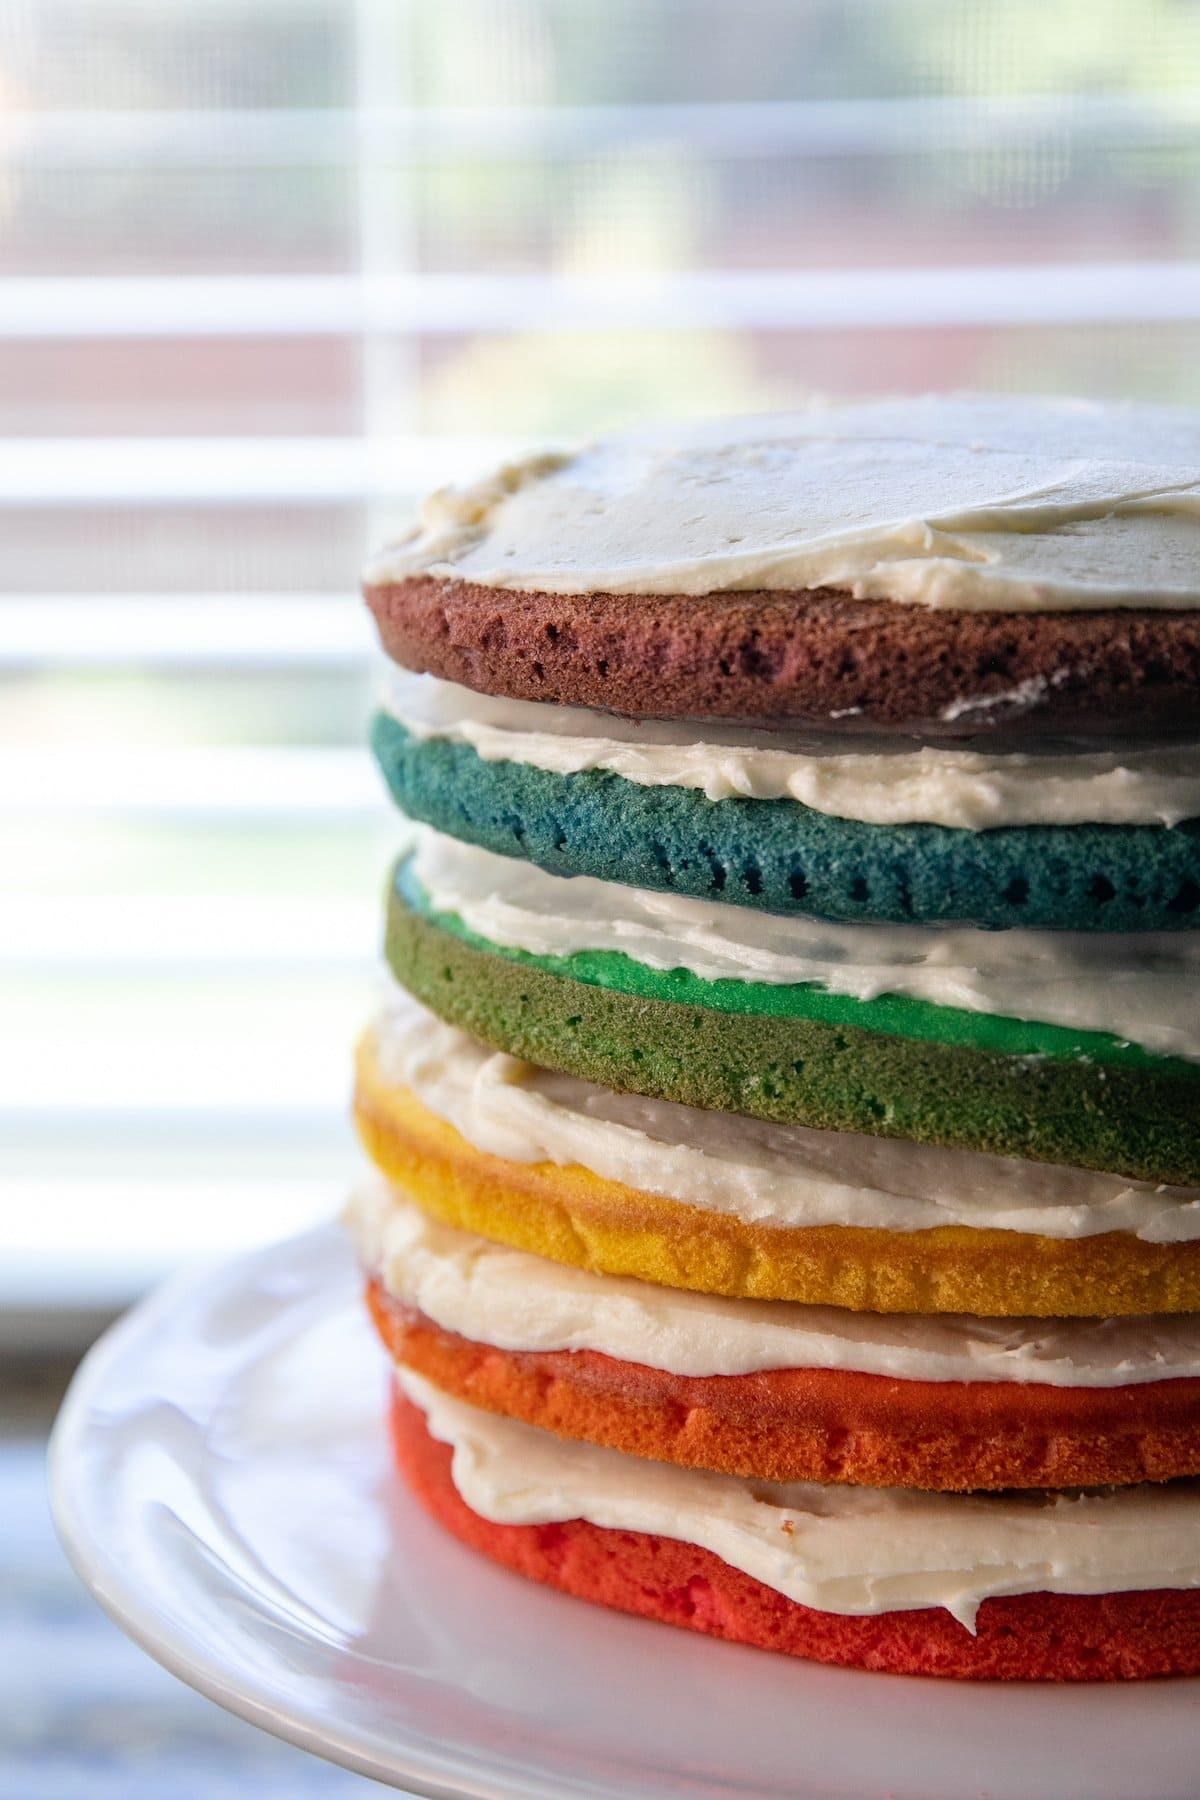 cake layers stacked with frosting in between them